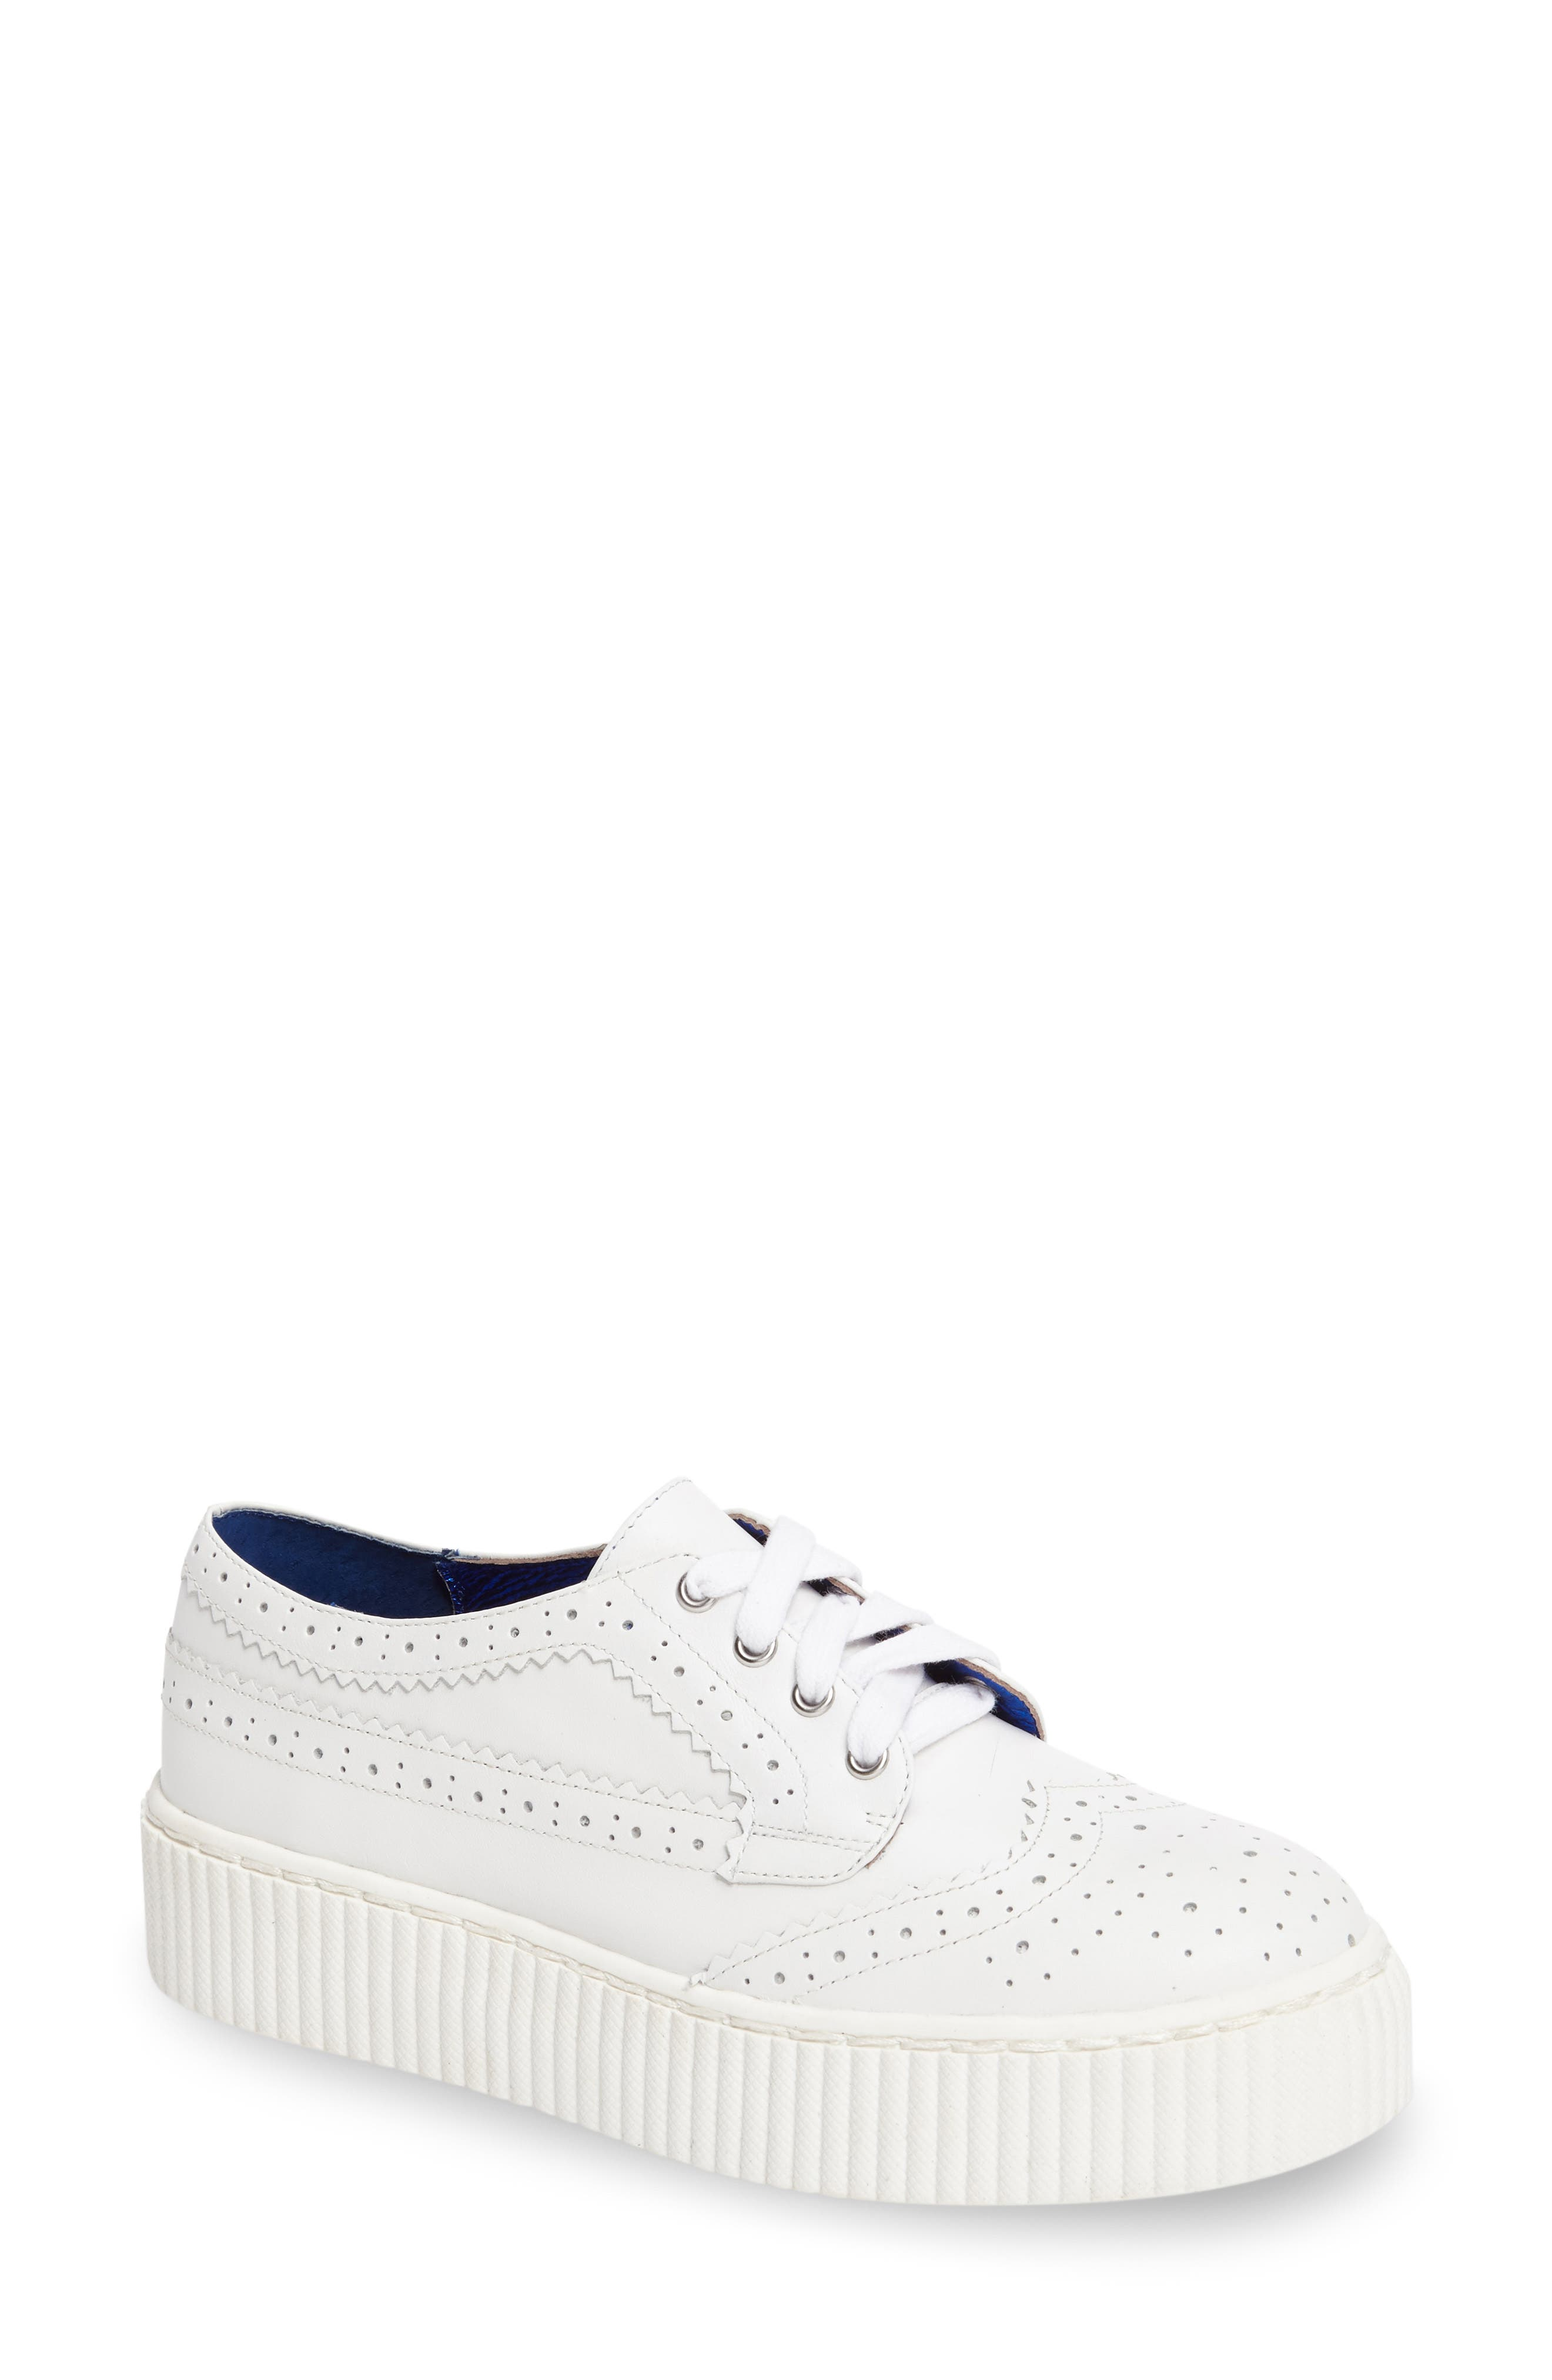 Shellys London Dilys Platform Sneaker (Women)